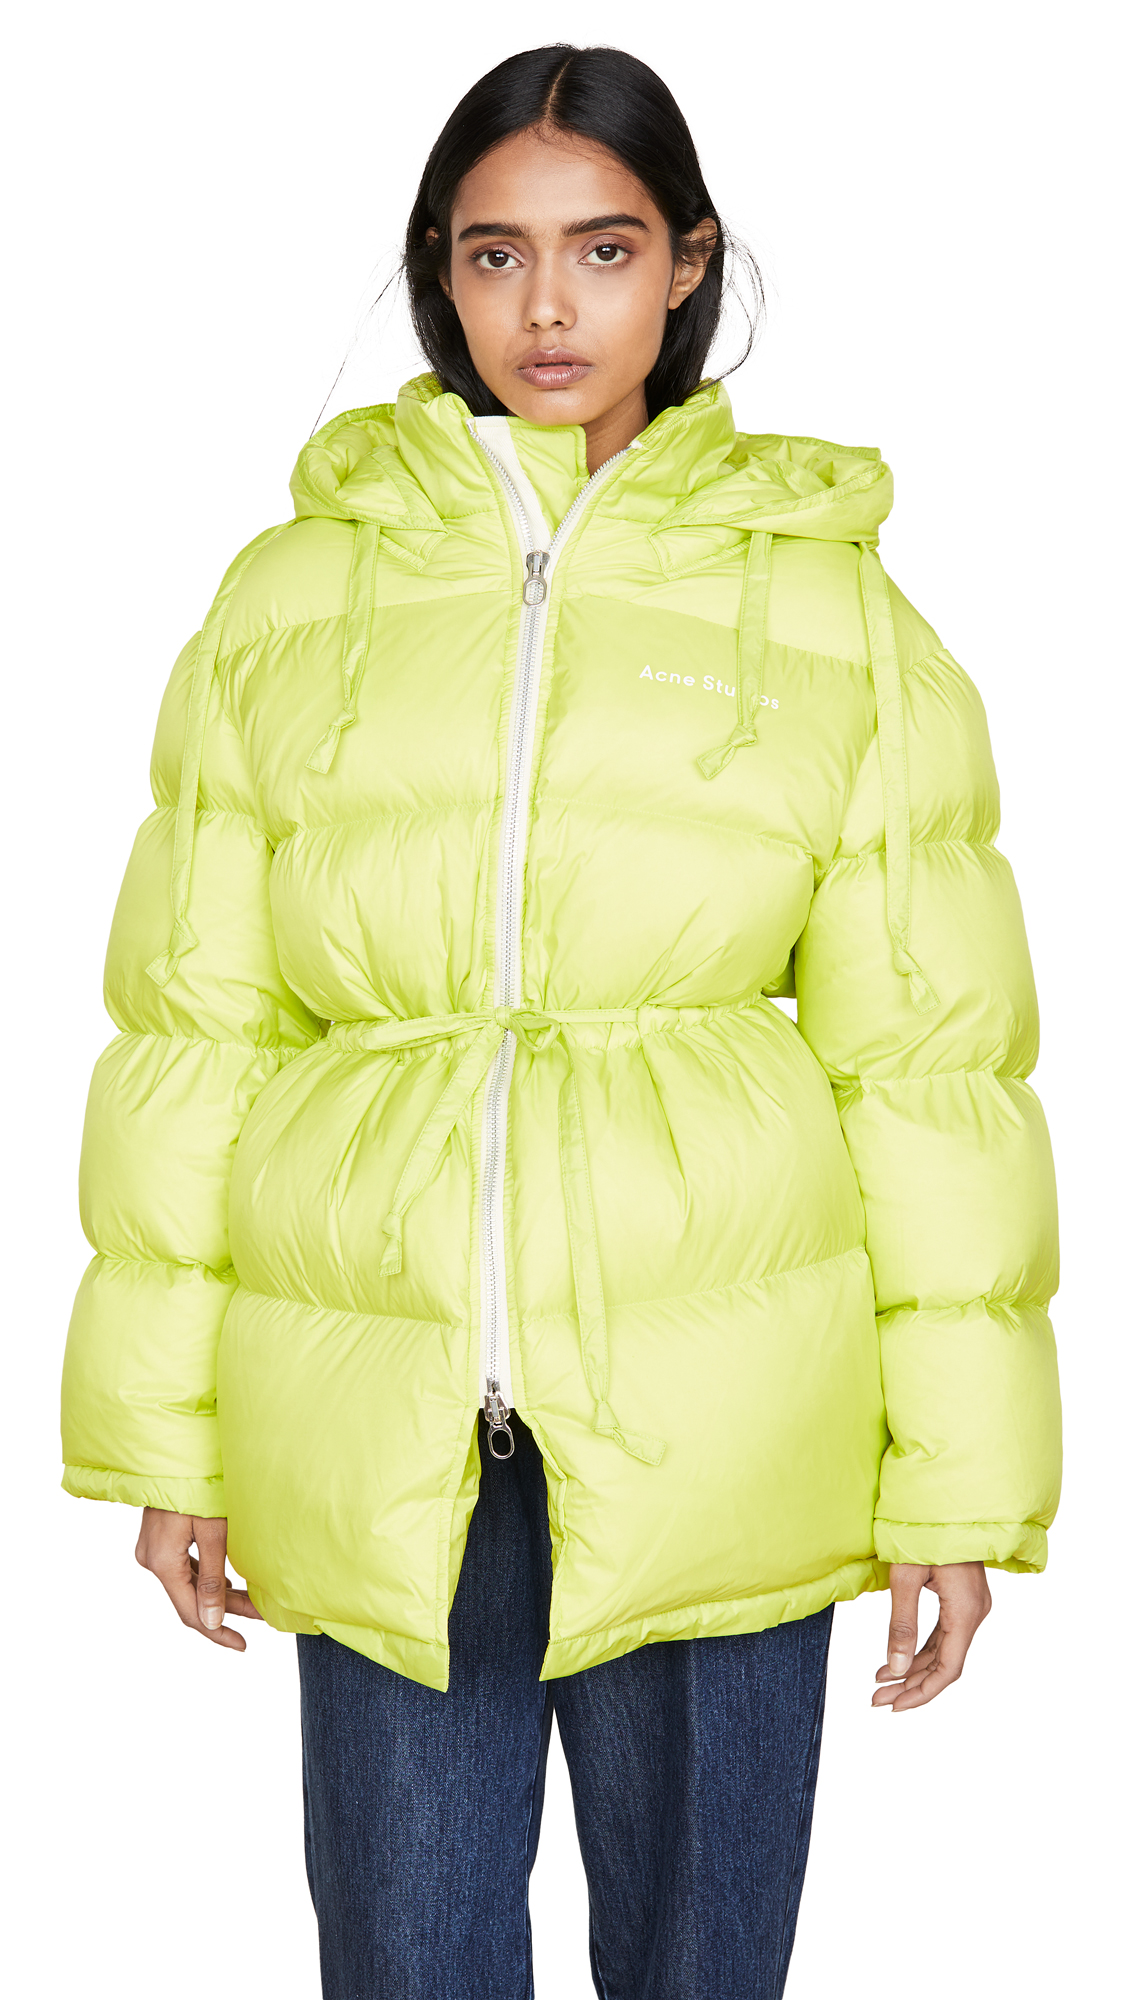 Acne Studios Down Jacket Outerwear - Neon Yellow